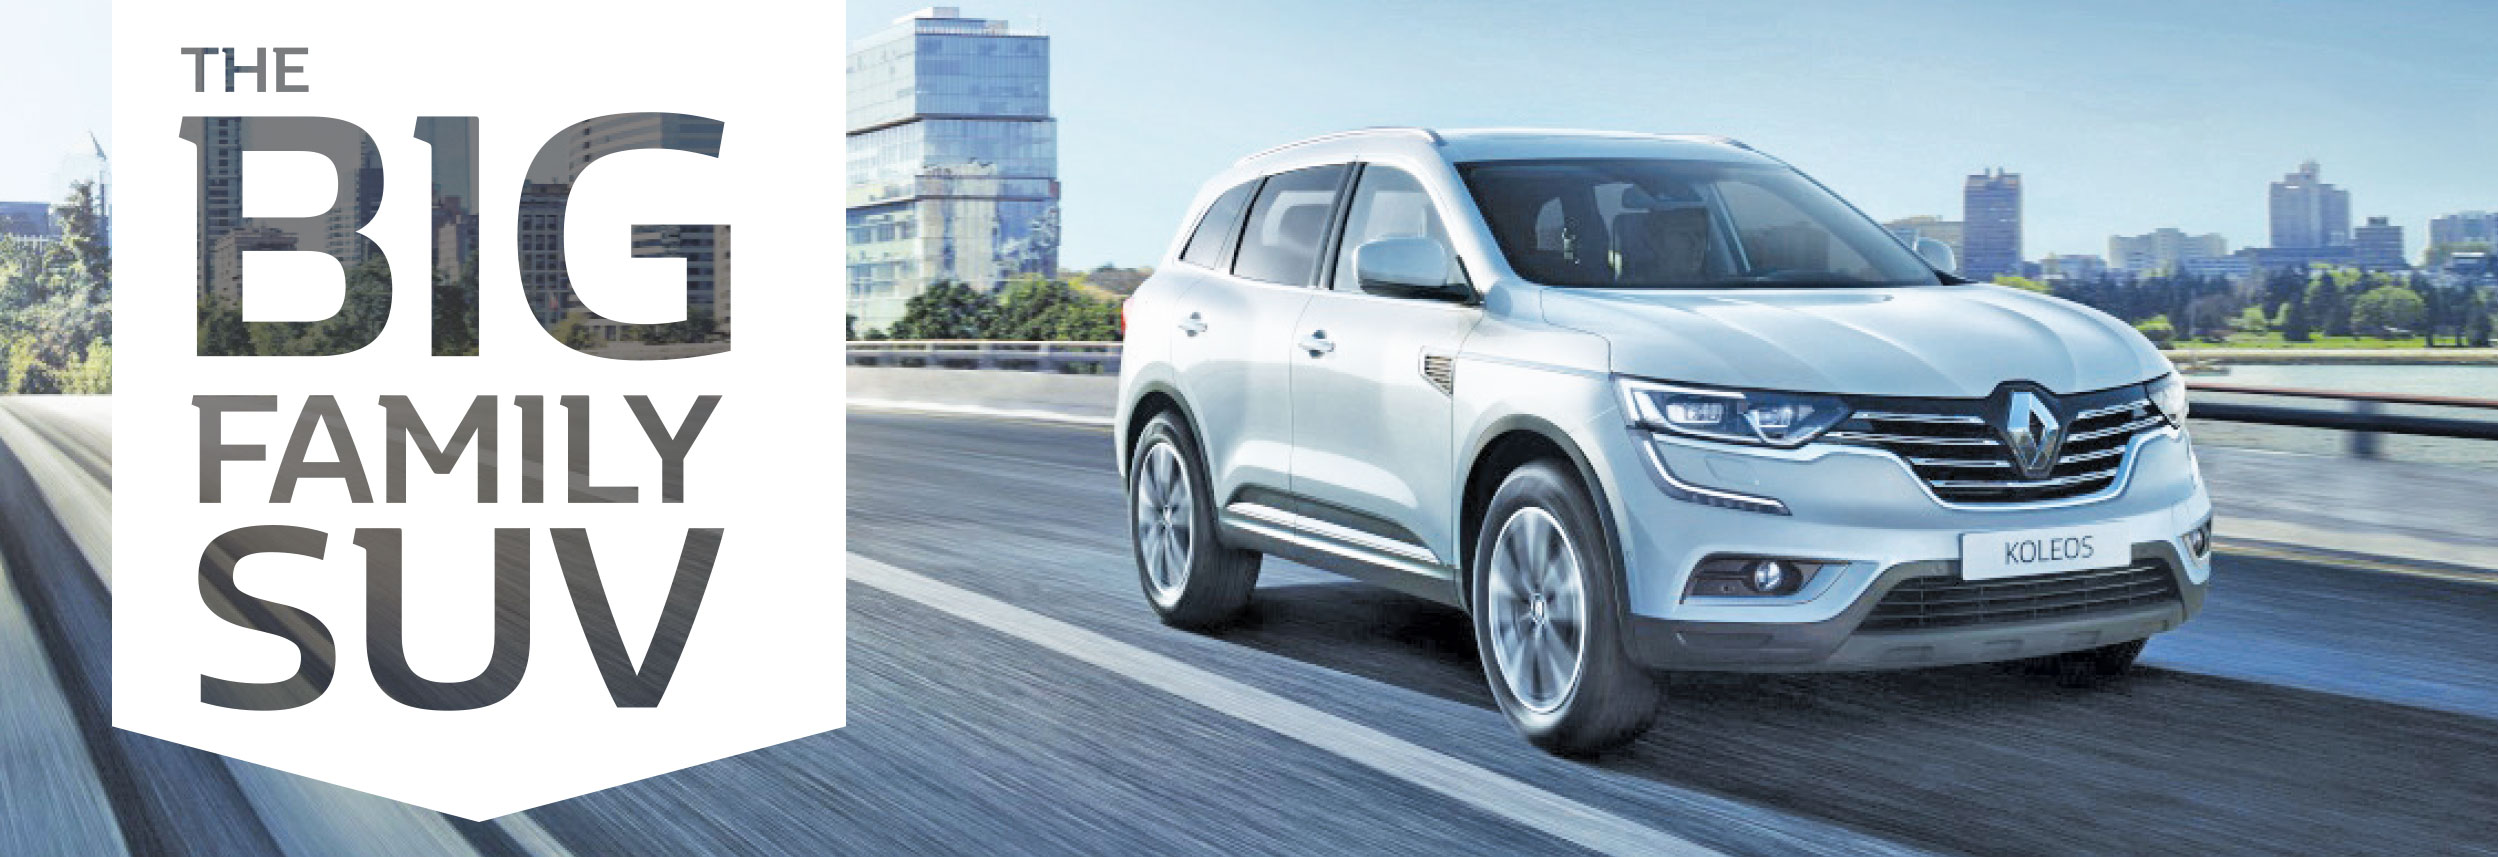 Renault Koleos - Big Family SUV